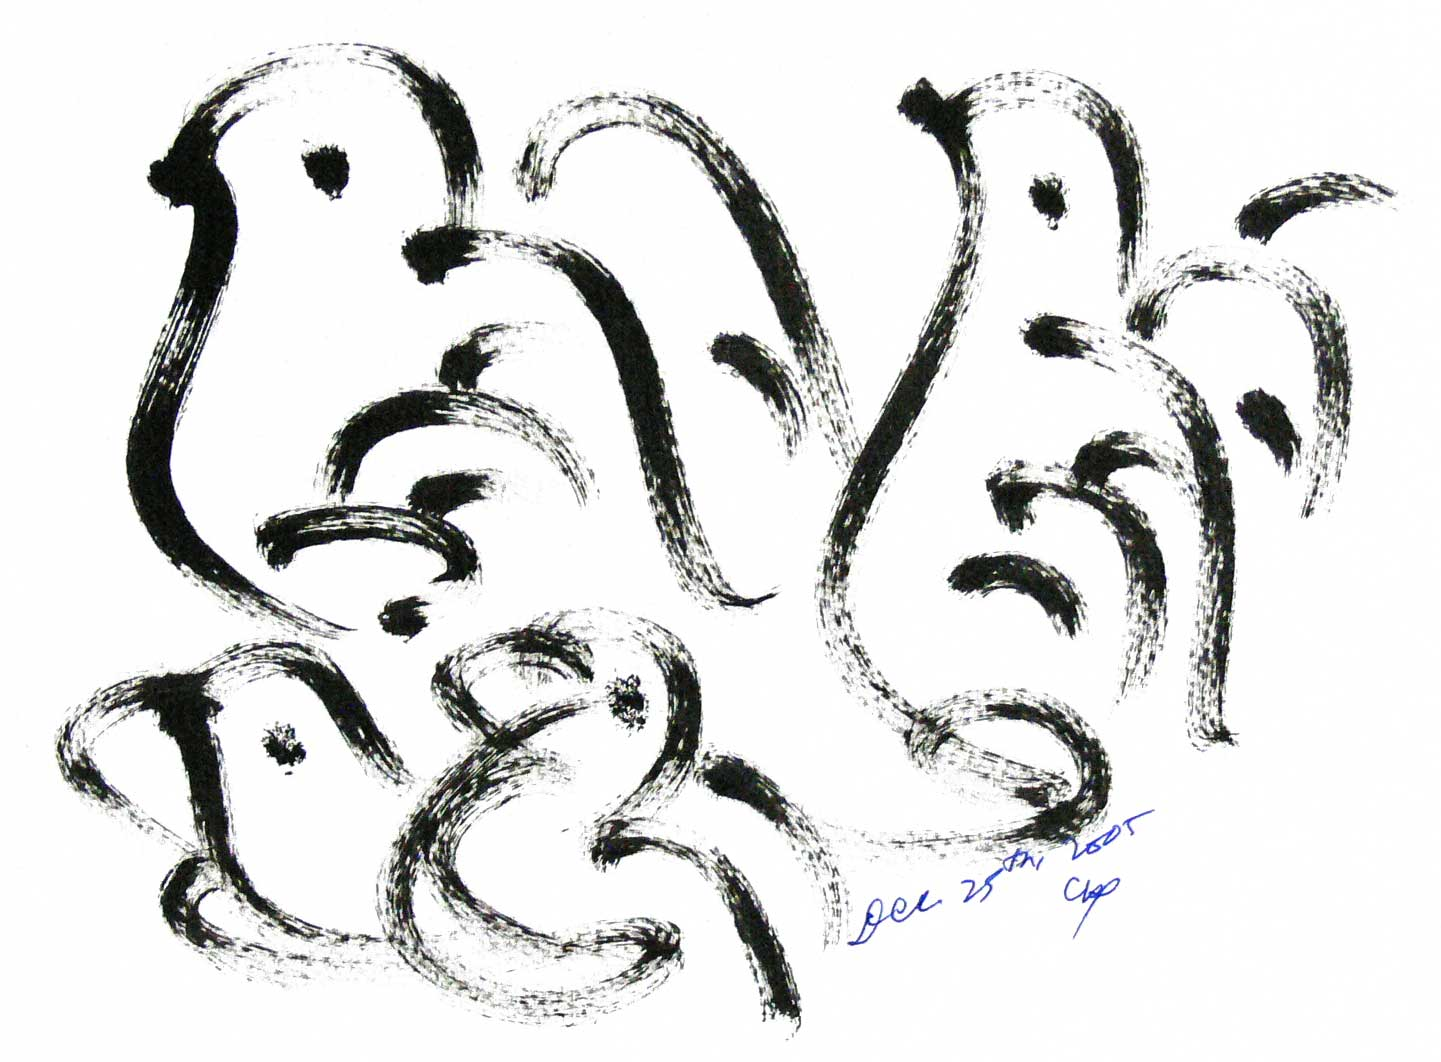 Bird-Drawing-by-Sri-Chinmoy-25-12-2005-5